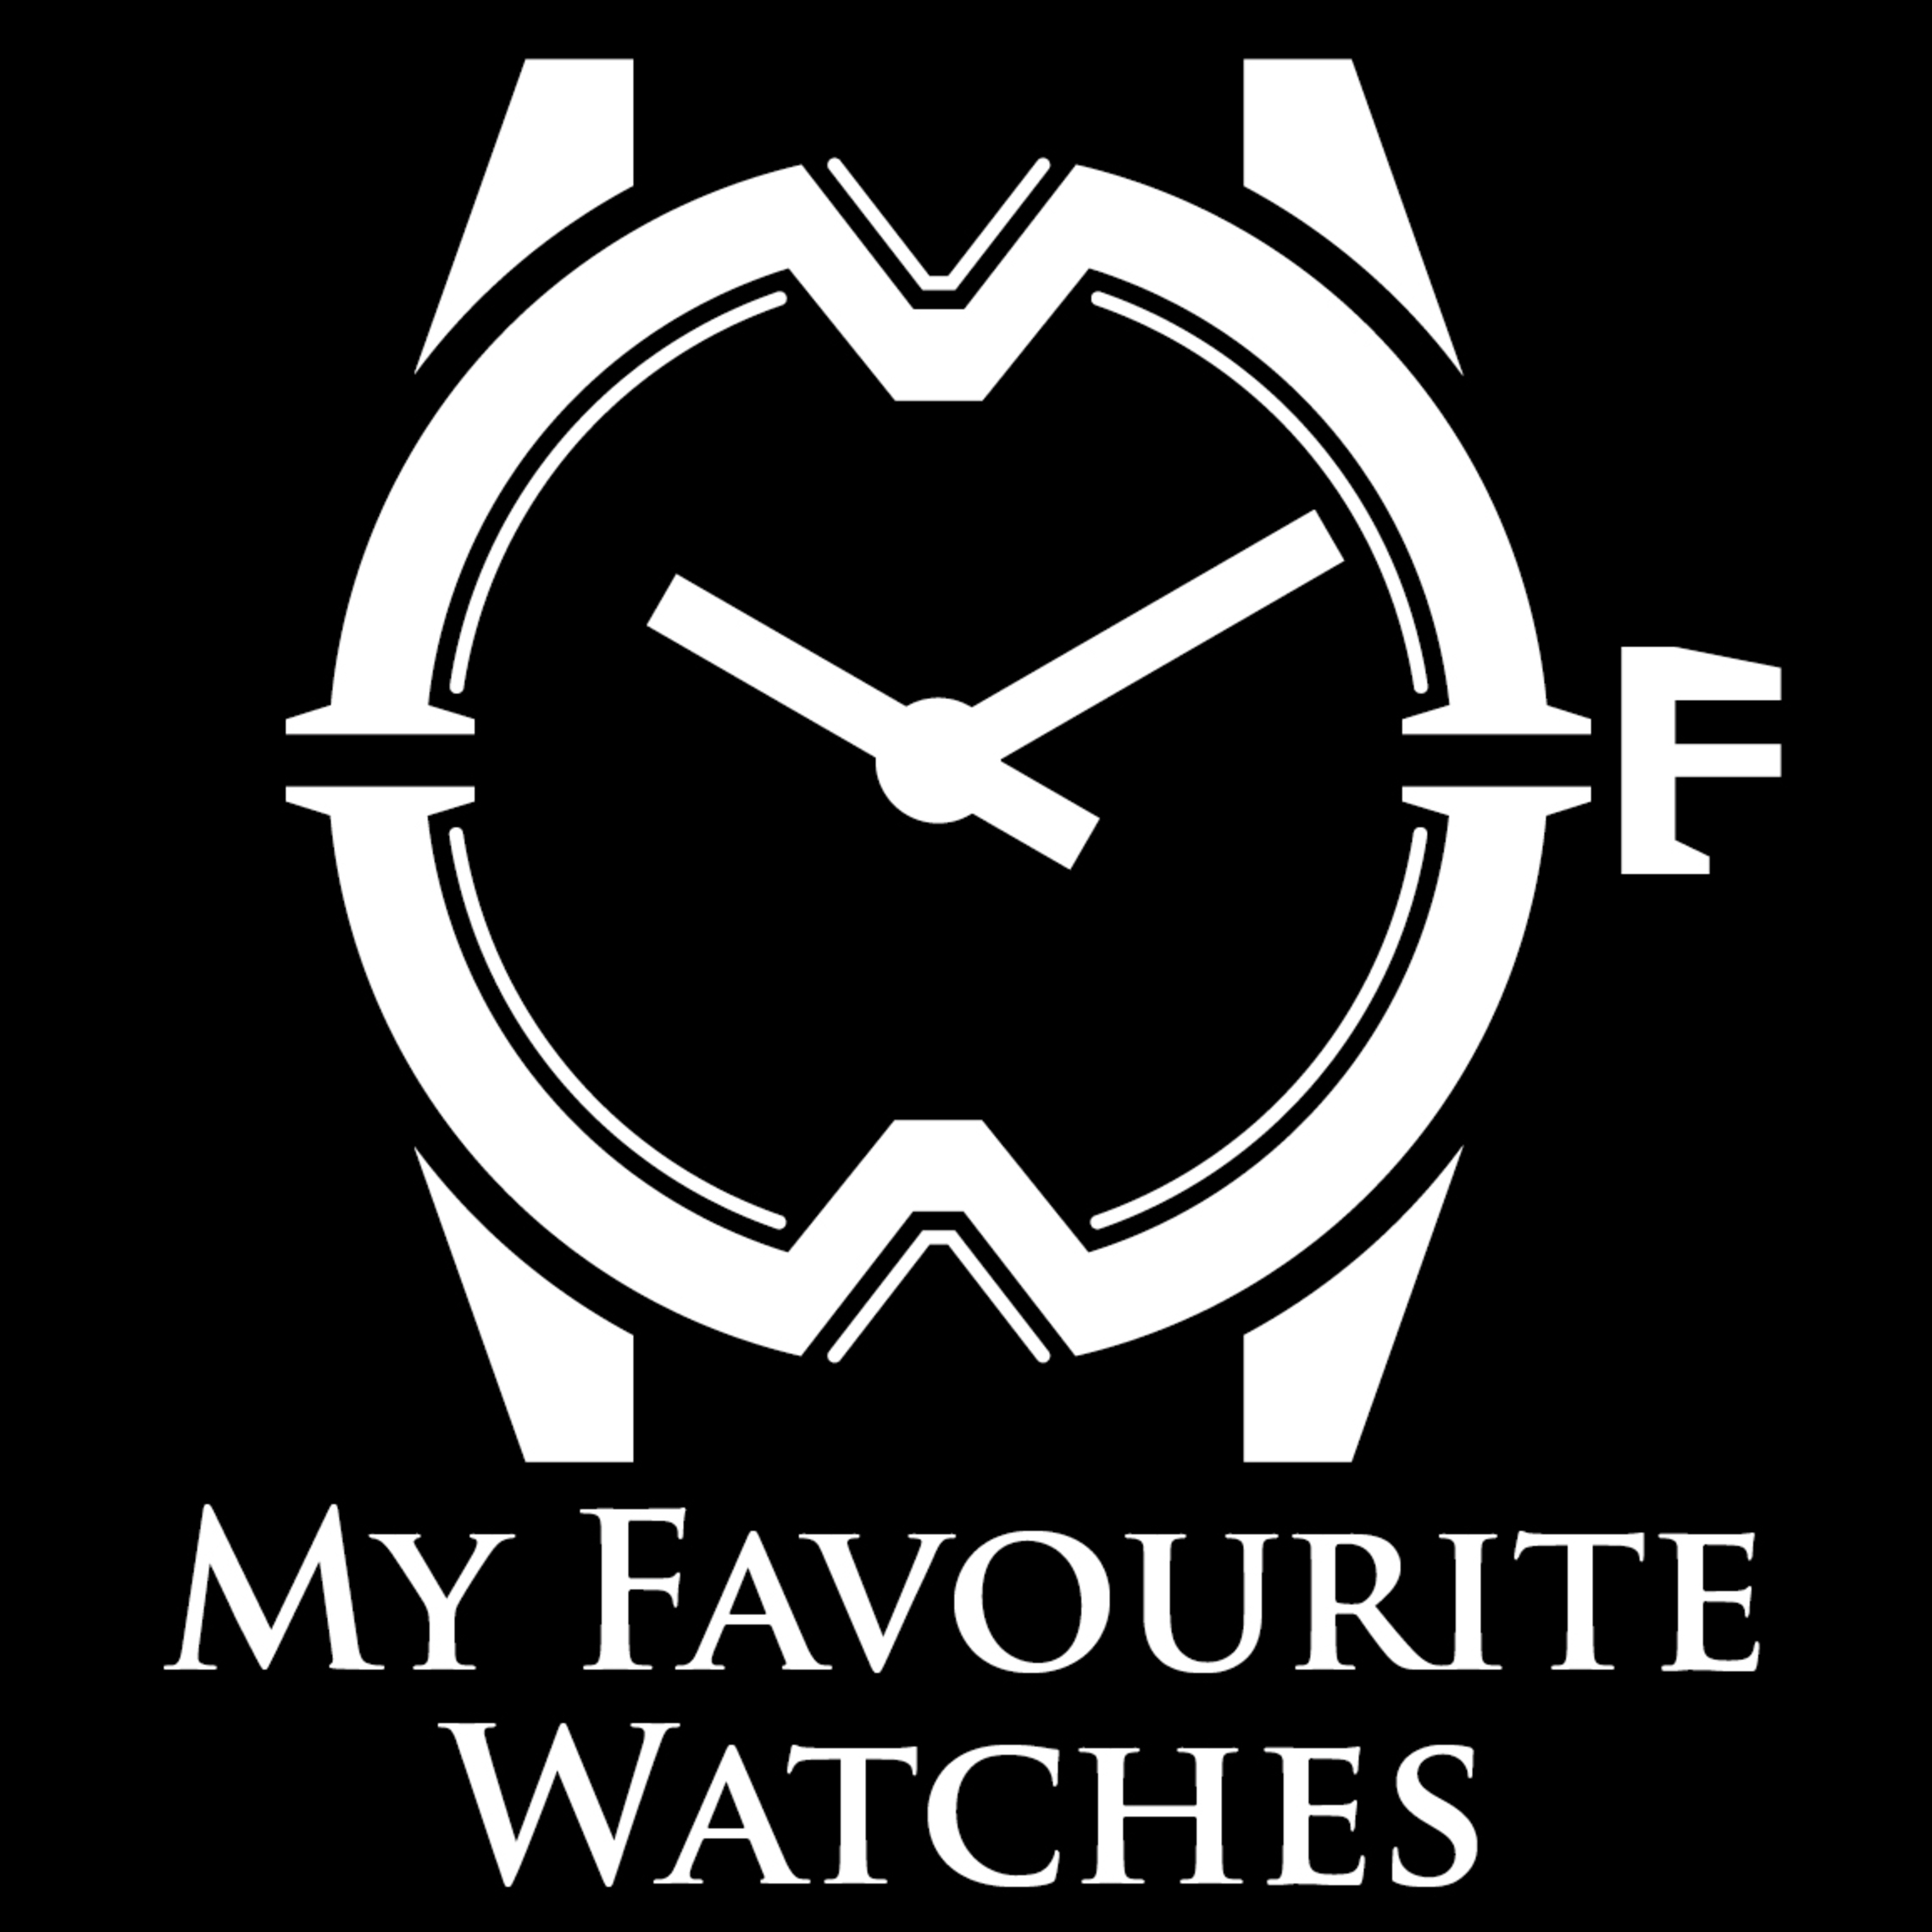 my favourite watches- company logo